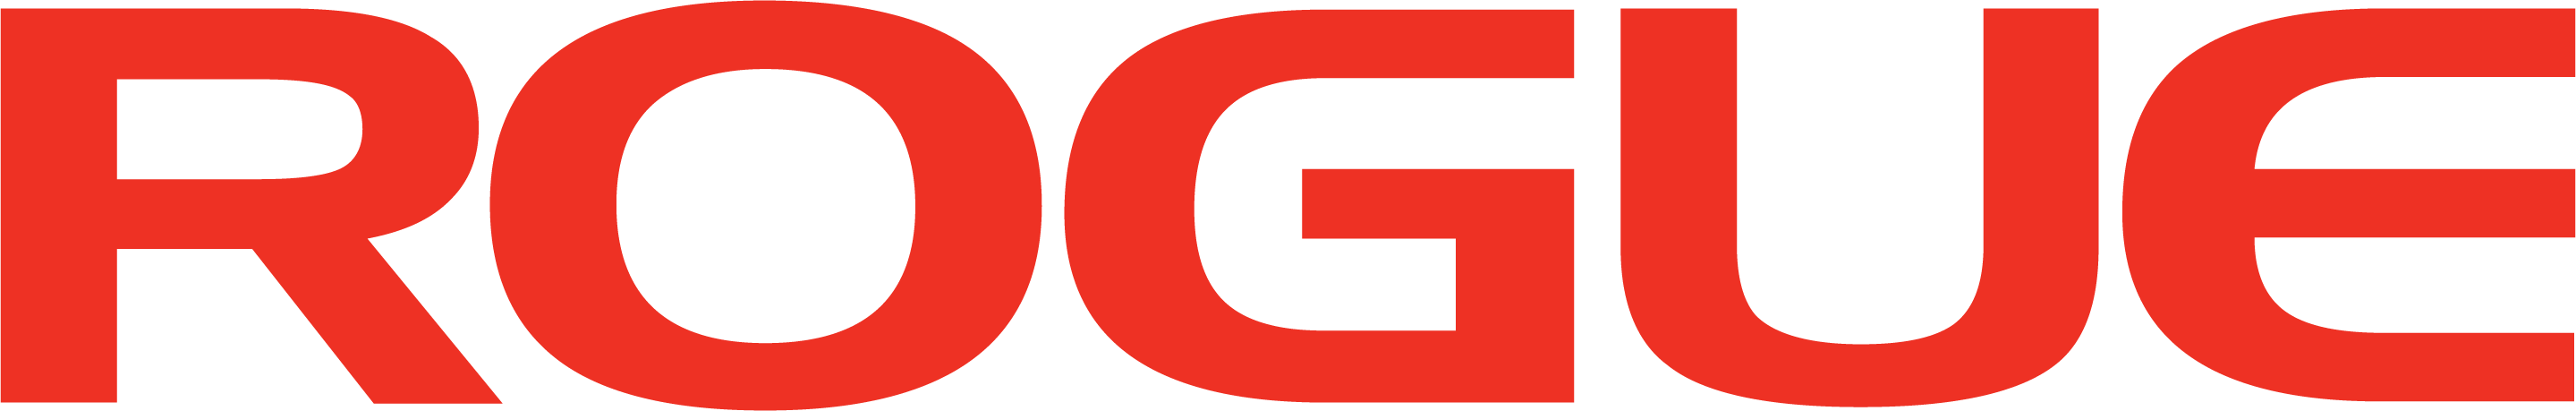 Rogue Logo [Fitness] png